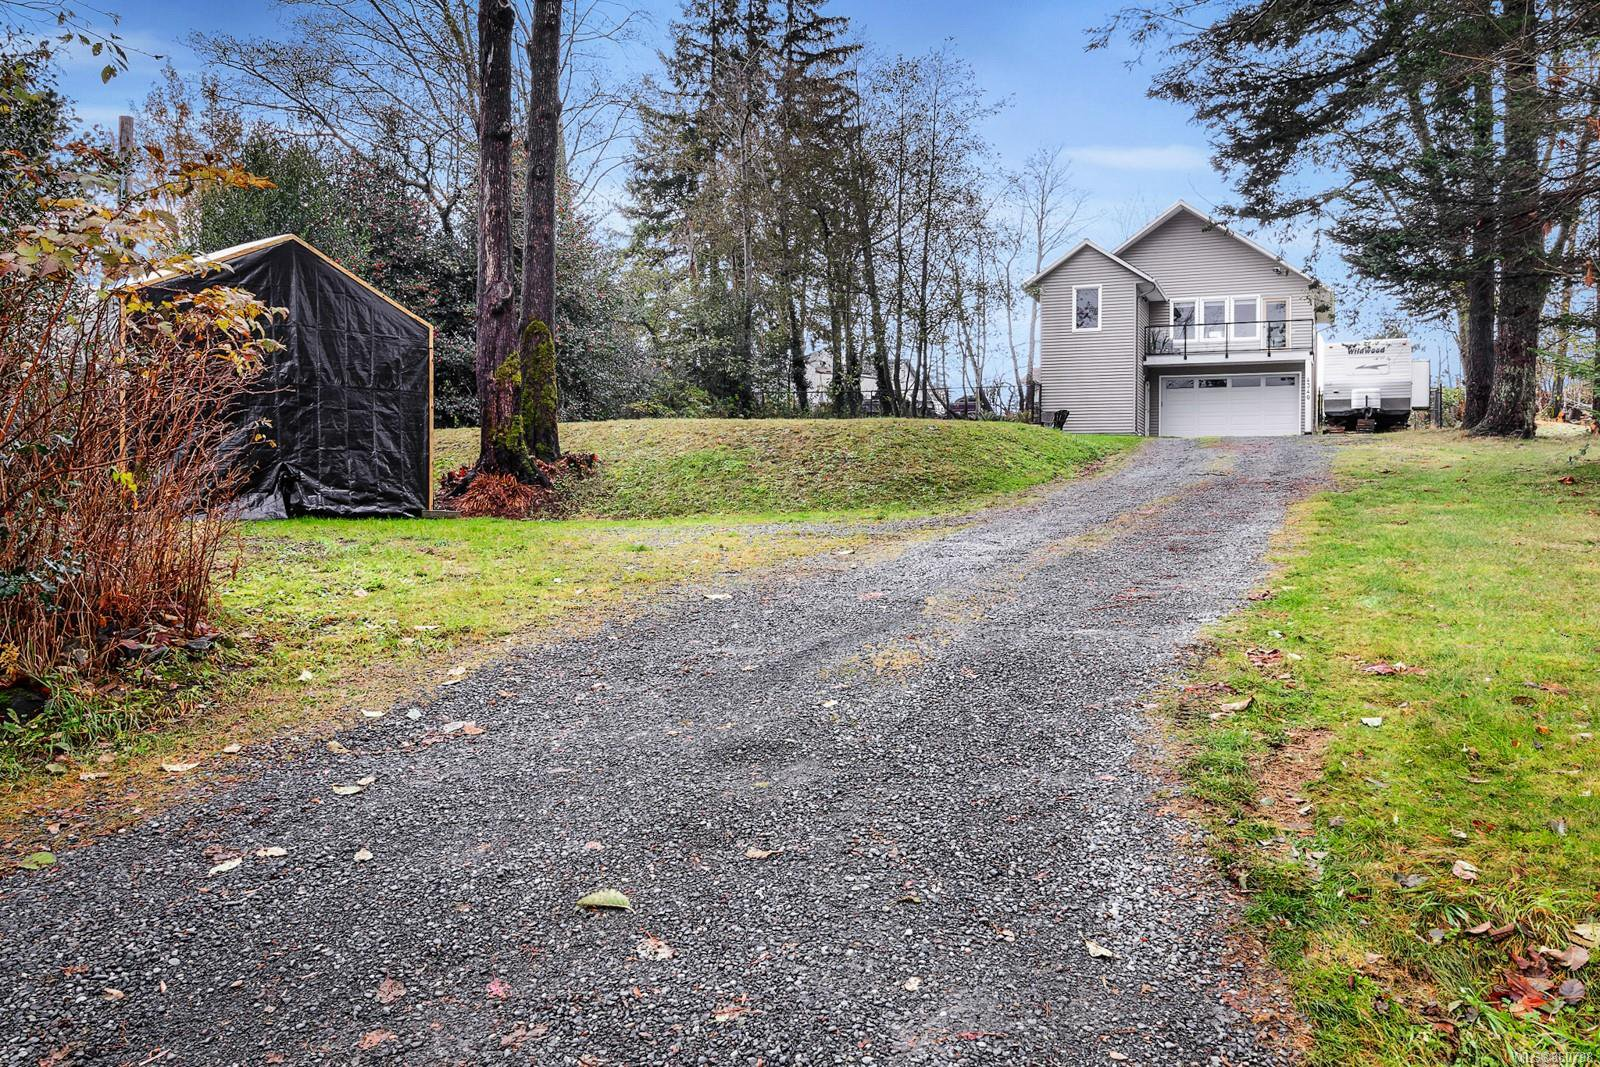 Main Photo: 4340 Discovery Dr in : CR Campbell River North House for sale (Campbell River)  : MLS®# 860798